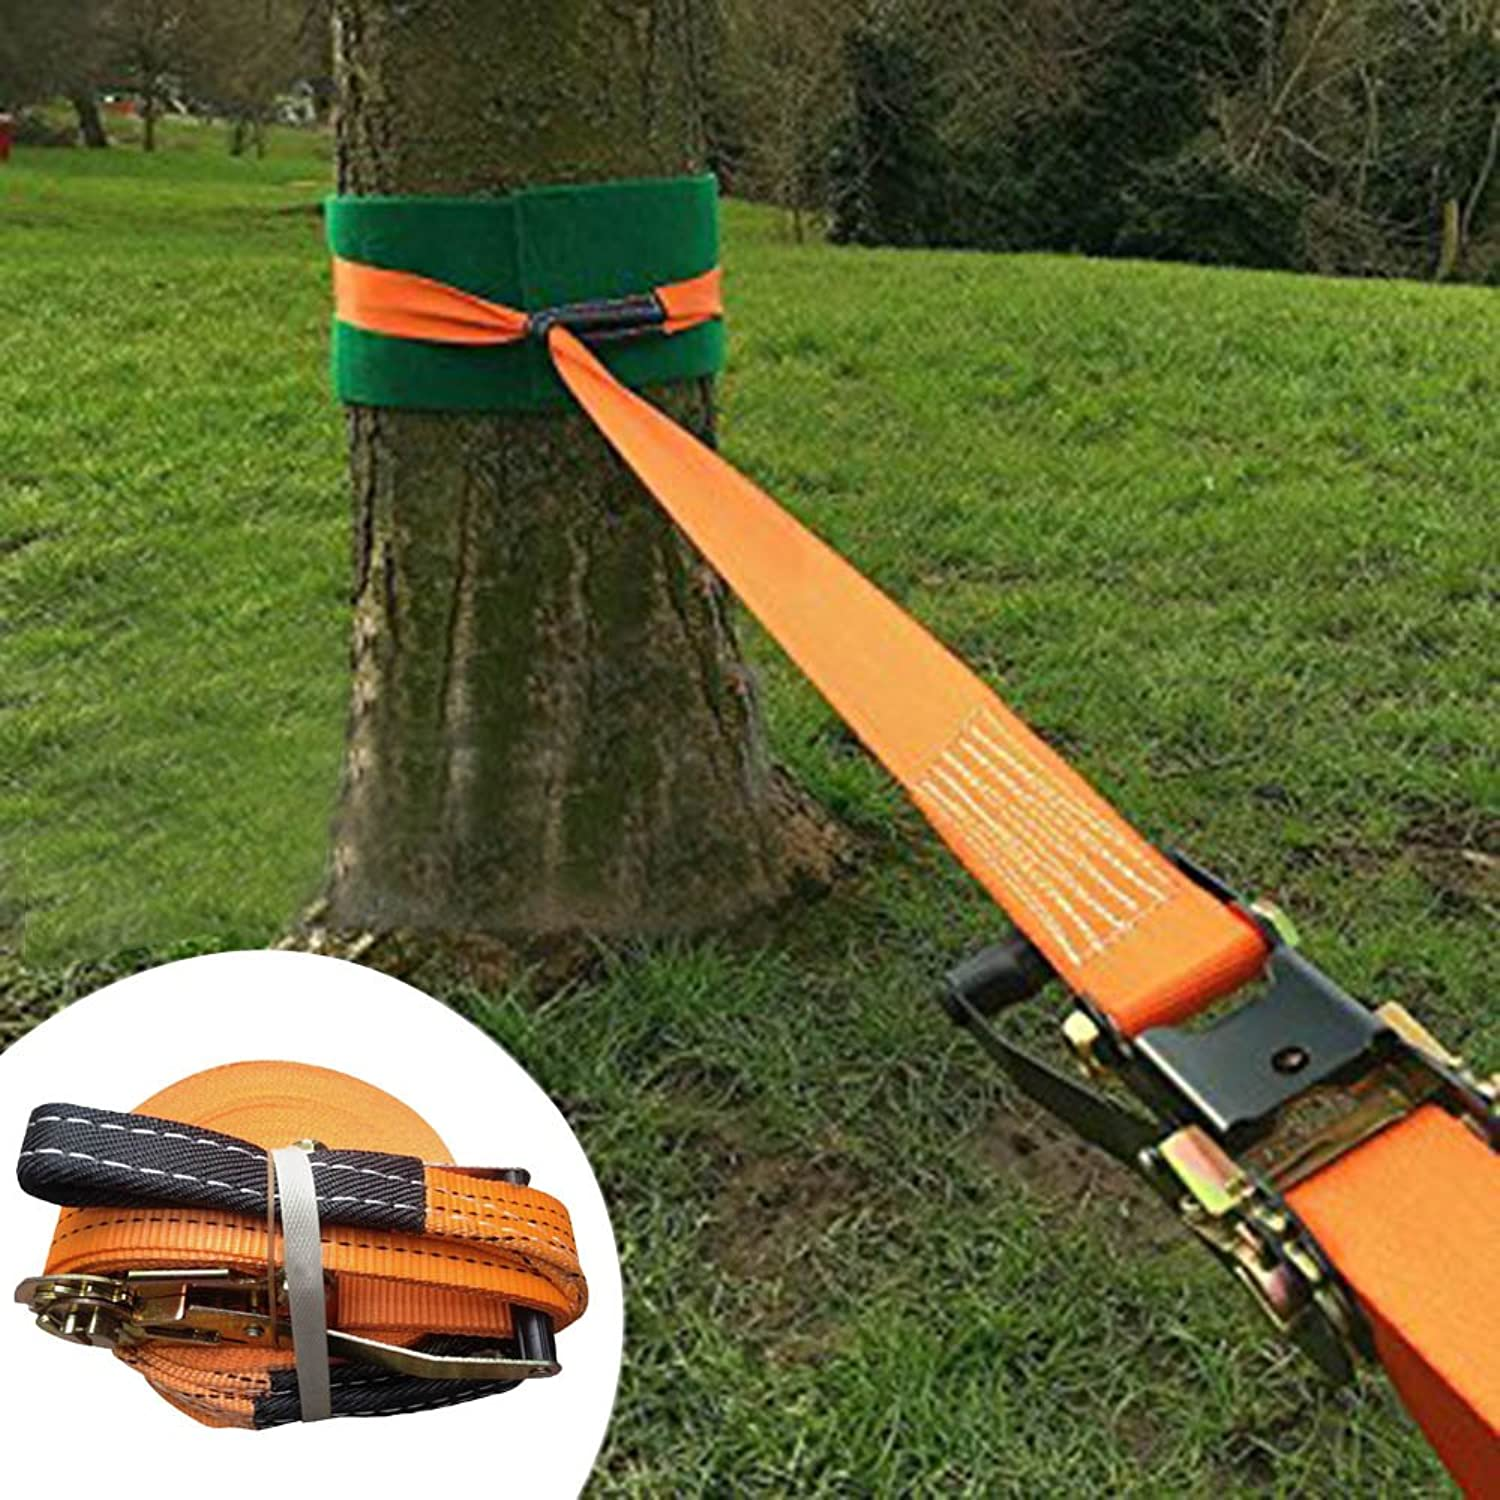 Slackline kit,FOME Slackline Set Slackers Slackline with Super Strong Slackline Ratchet Nylon Beginner Slackline 49ft1.96in(orange)